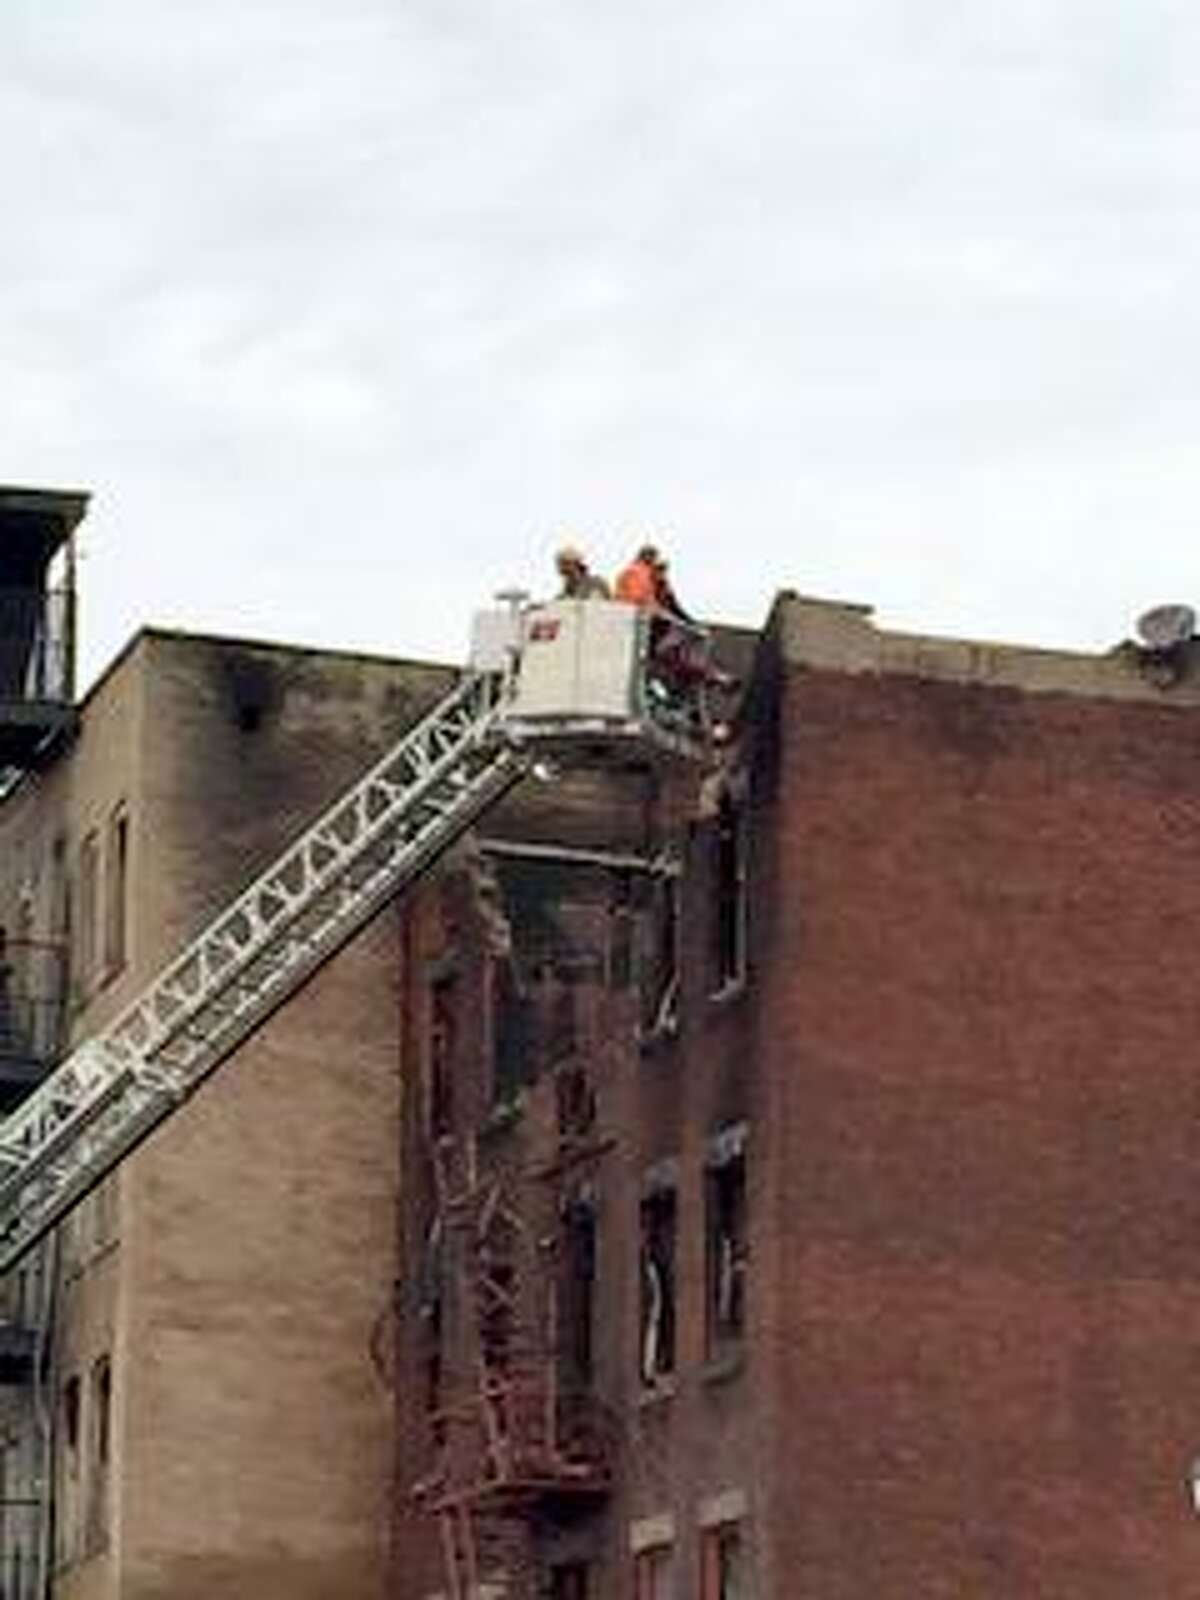 Crews photographing on Monday, March 16, 2015, inside a building destroyed by a fire on Jay Street earlier this month. (Dartunorro D. Clark/Times Union)